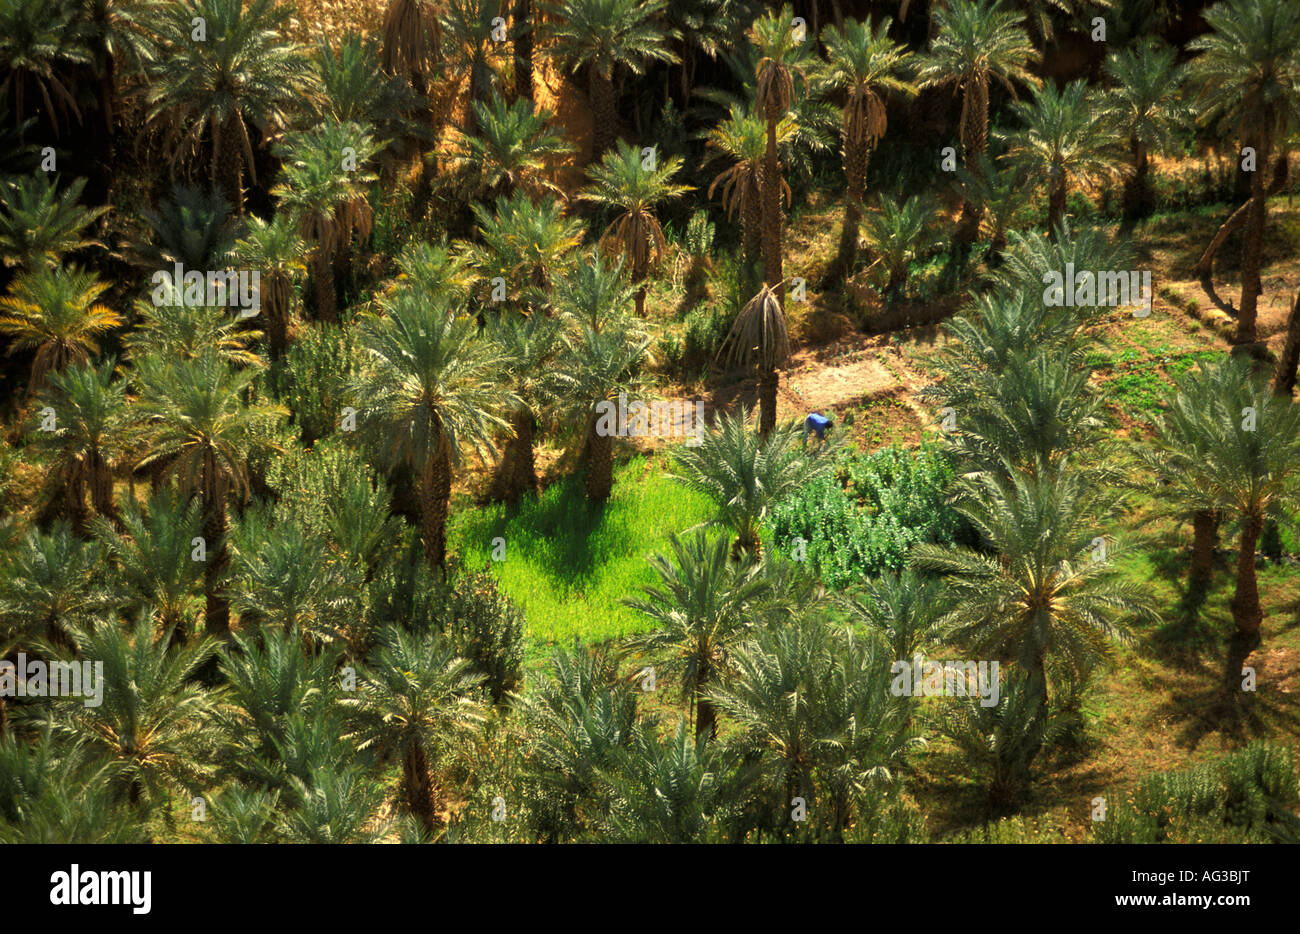 Algeria Taghit Man working on oasis garden Wheat under palm trees - Stock Image